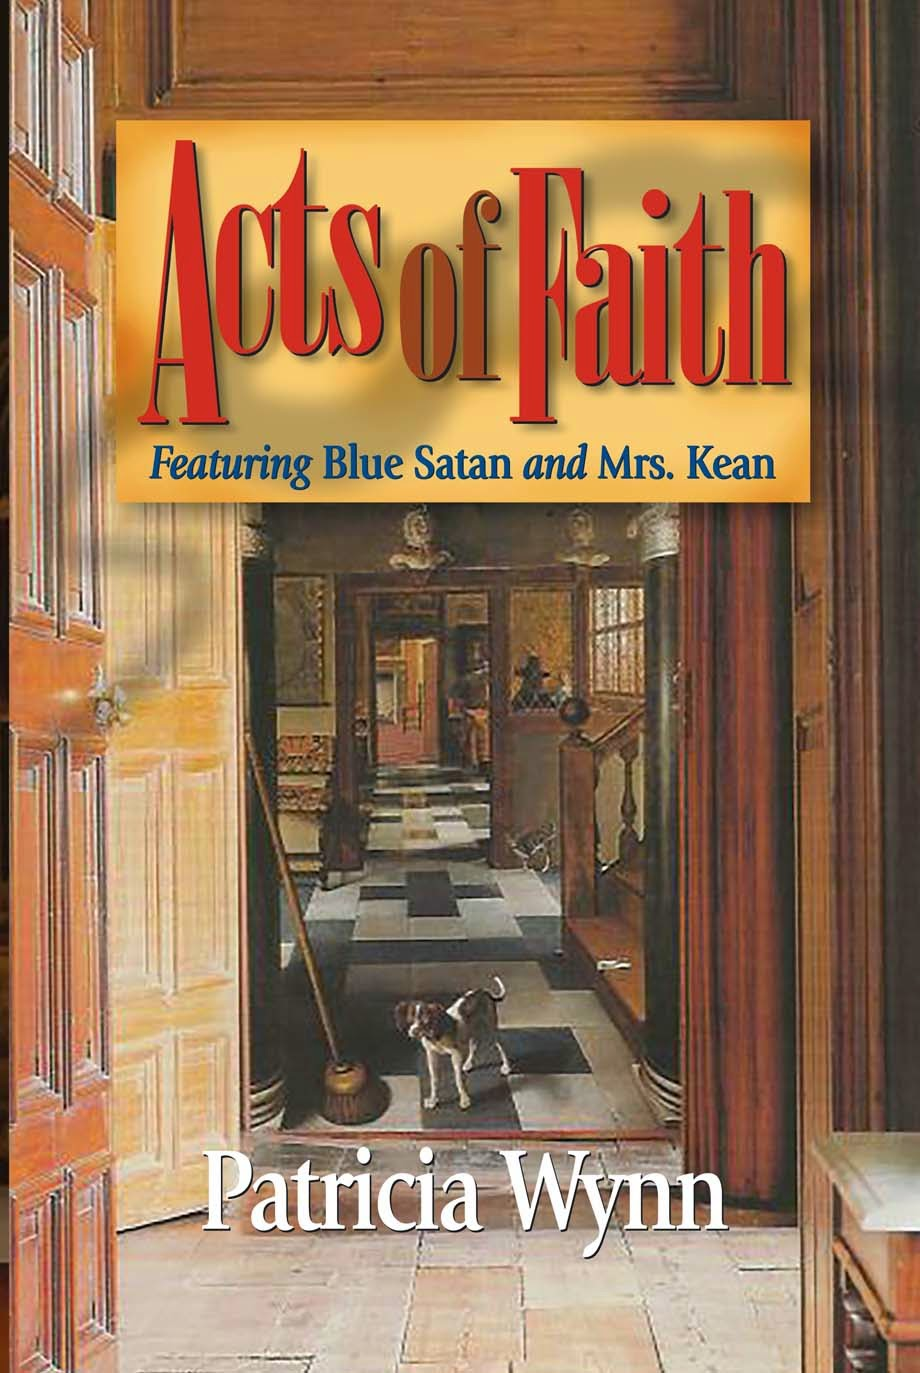 http://www.amazon.com/Acts-Faith-Blue-Satan-Mystery/dp/1935421077